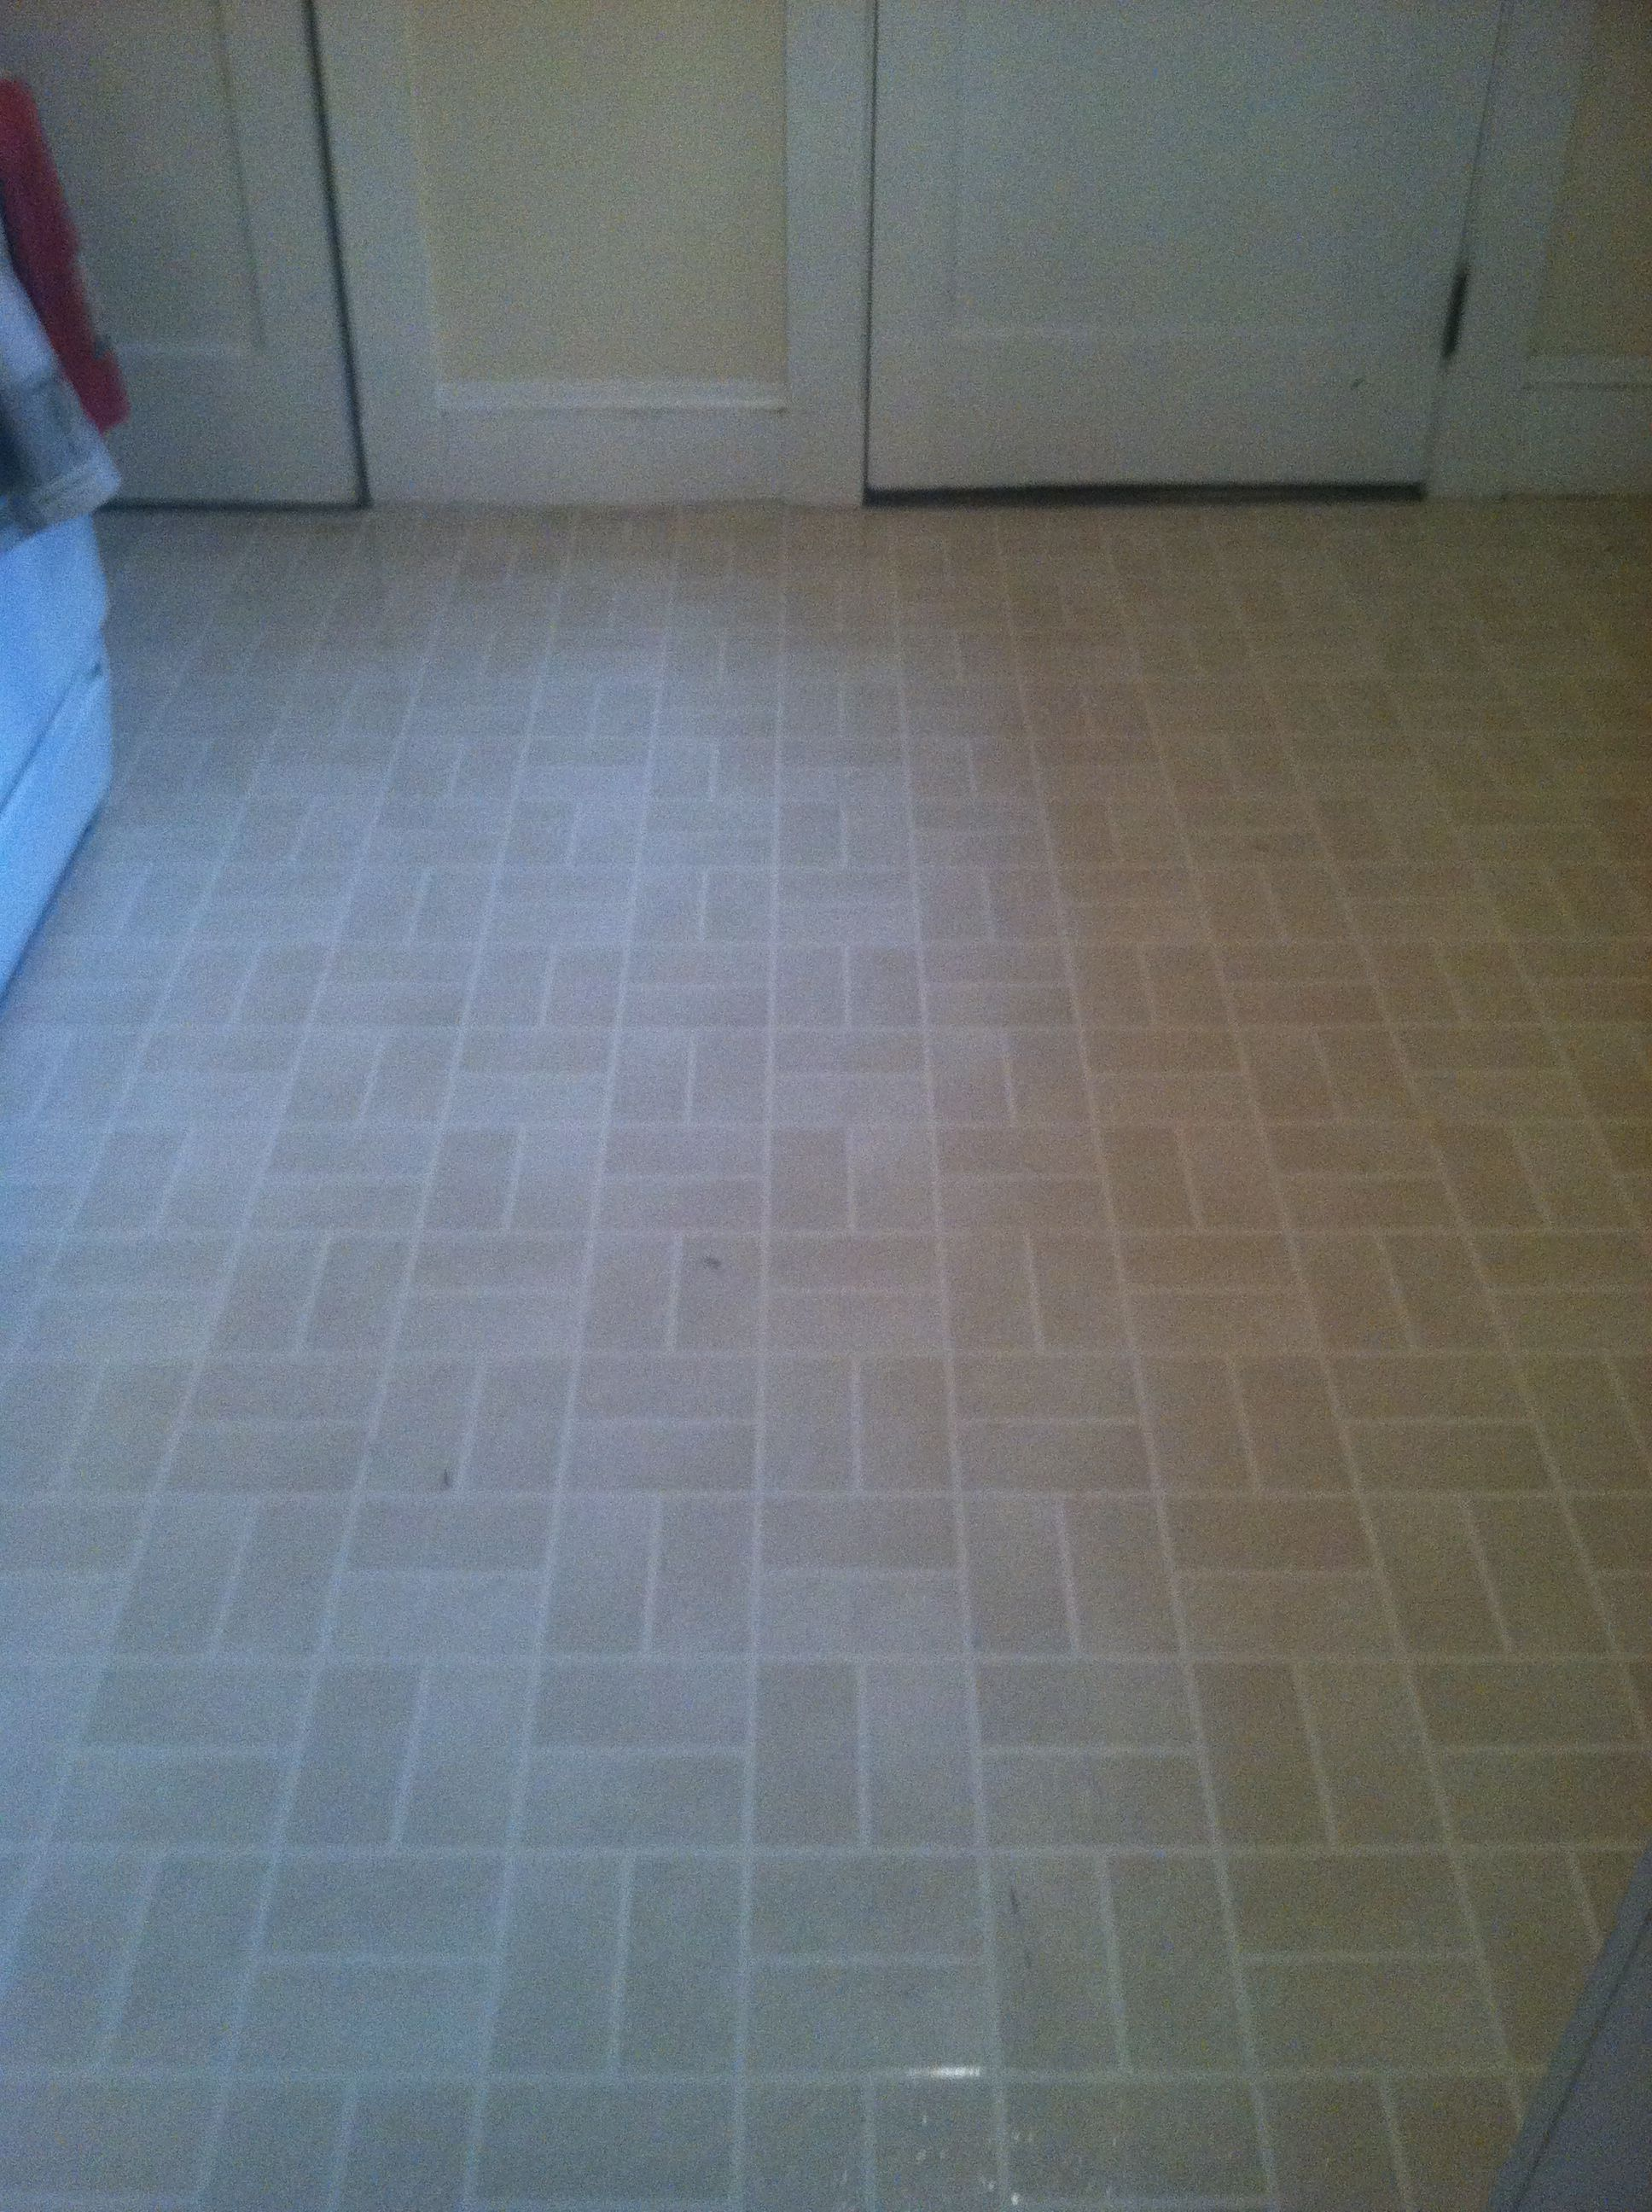 Easy off fume free oven cleaner took years of stains off